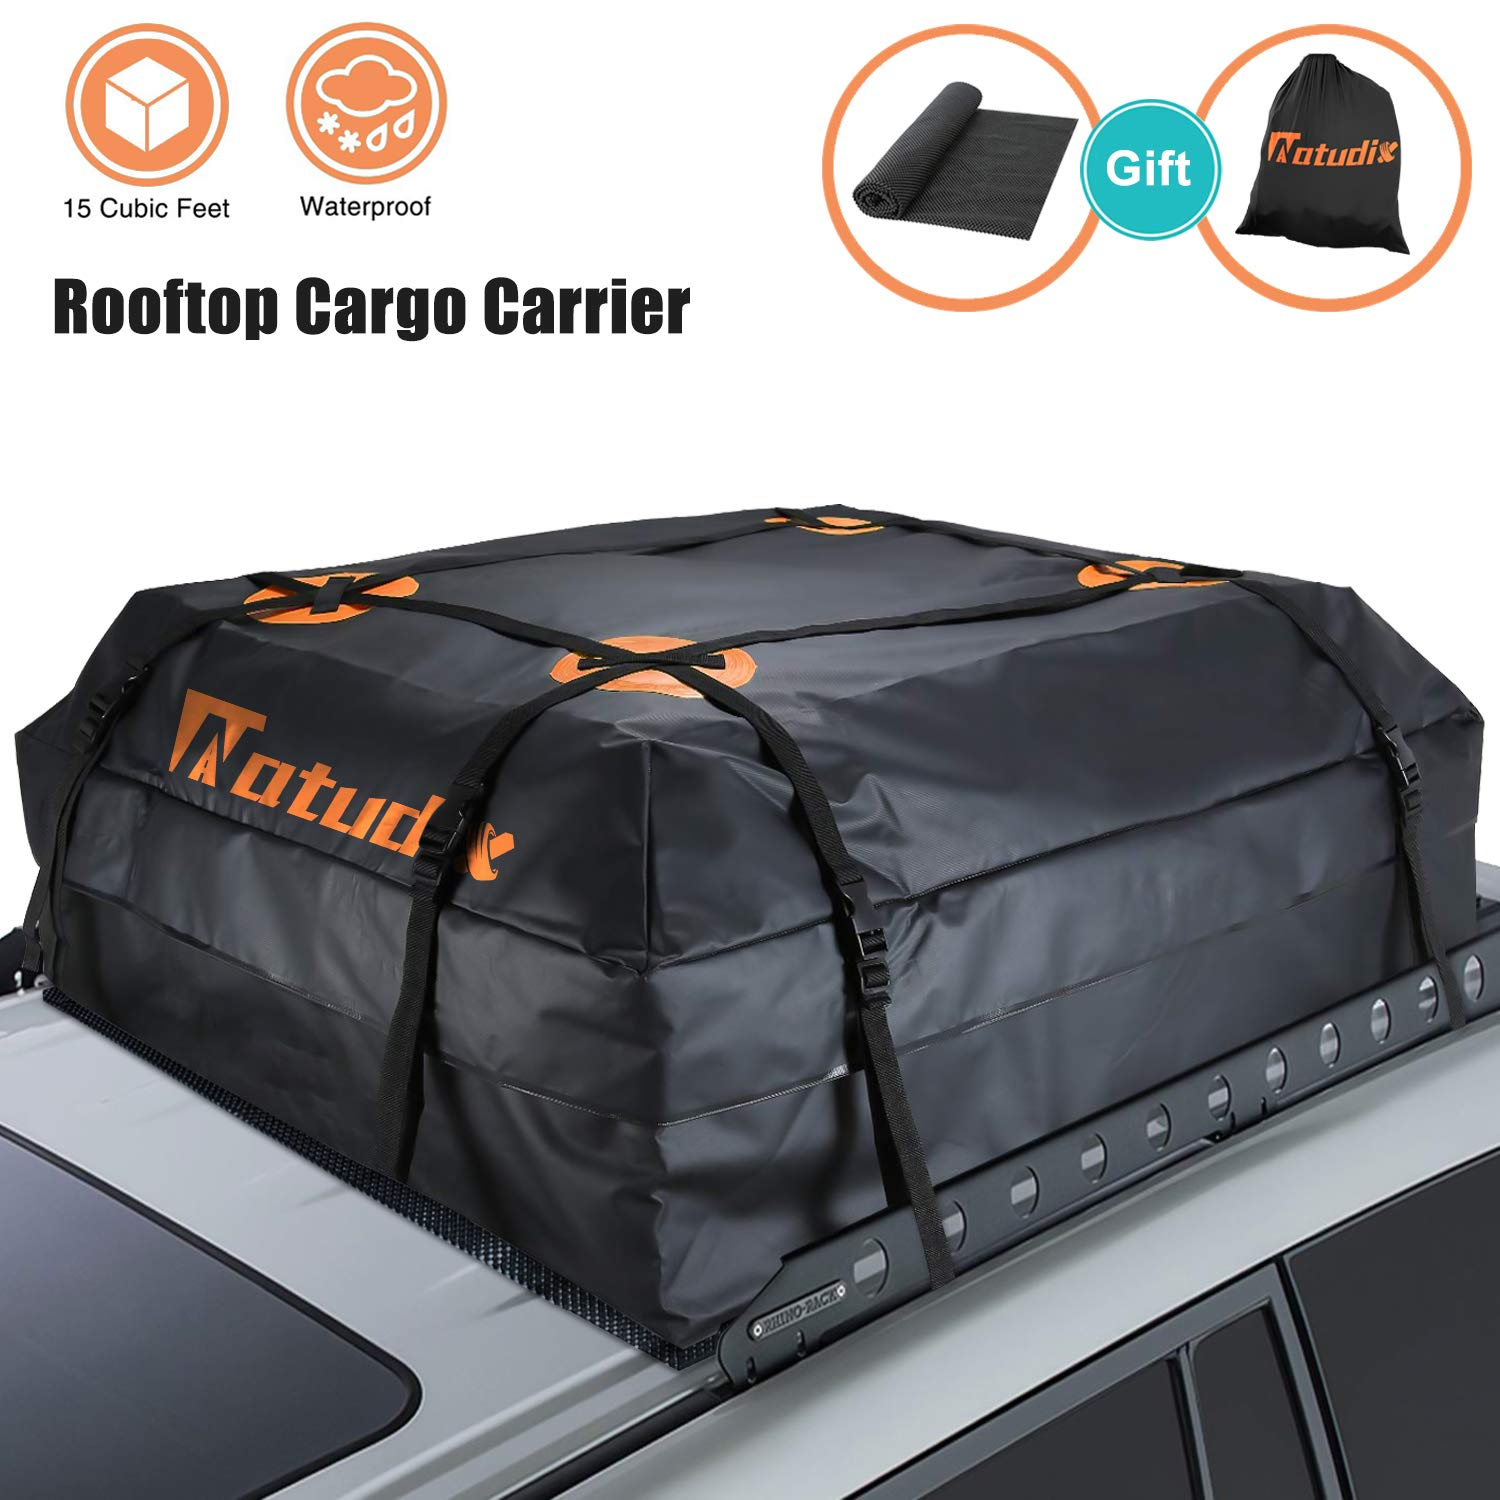 Natudix Car Rooftop Cargo Carrier Bag - 15 Cubic Feet Waterproof & Sturdy Zippers Car Roof Bag with Protective Mat and Carry Bag, Fits All Cars with Rack by Natudix